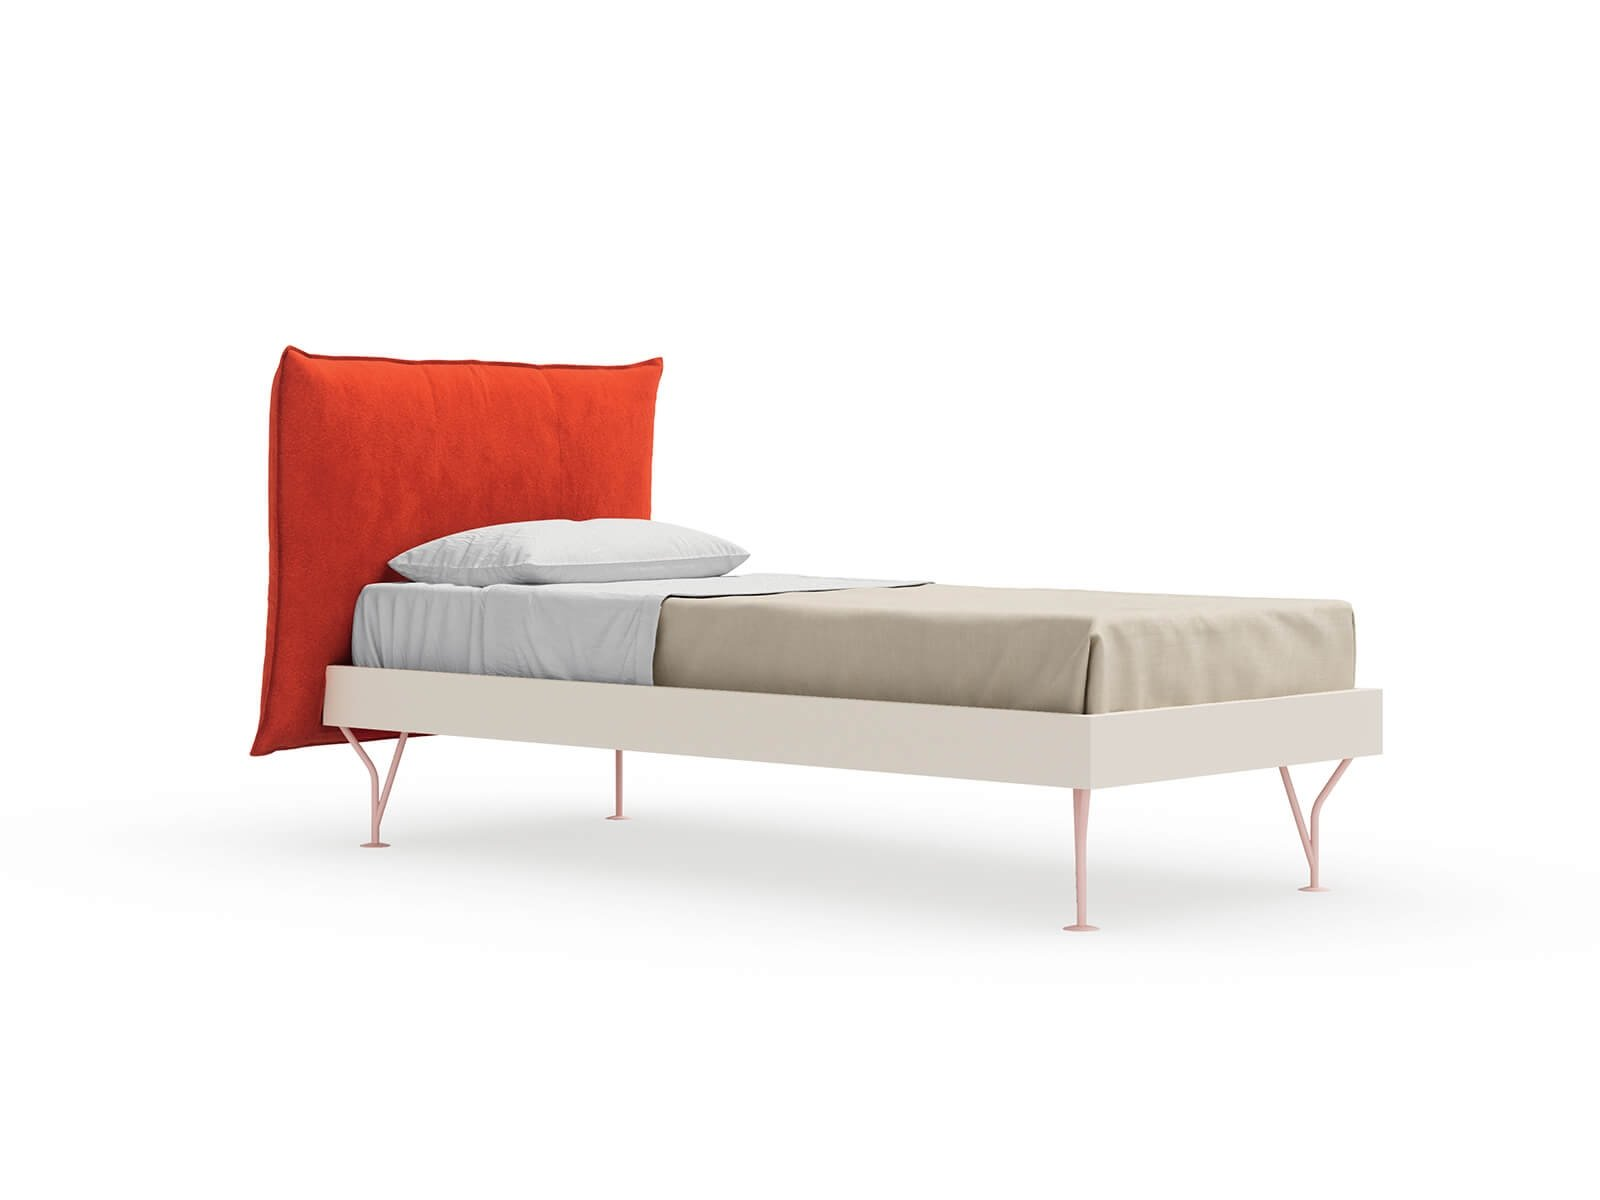 Pillow single bed